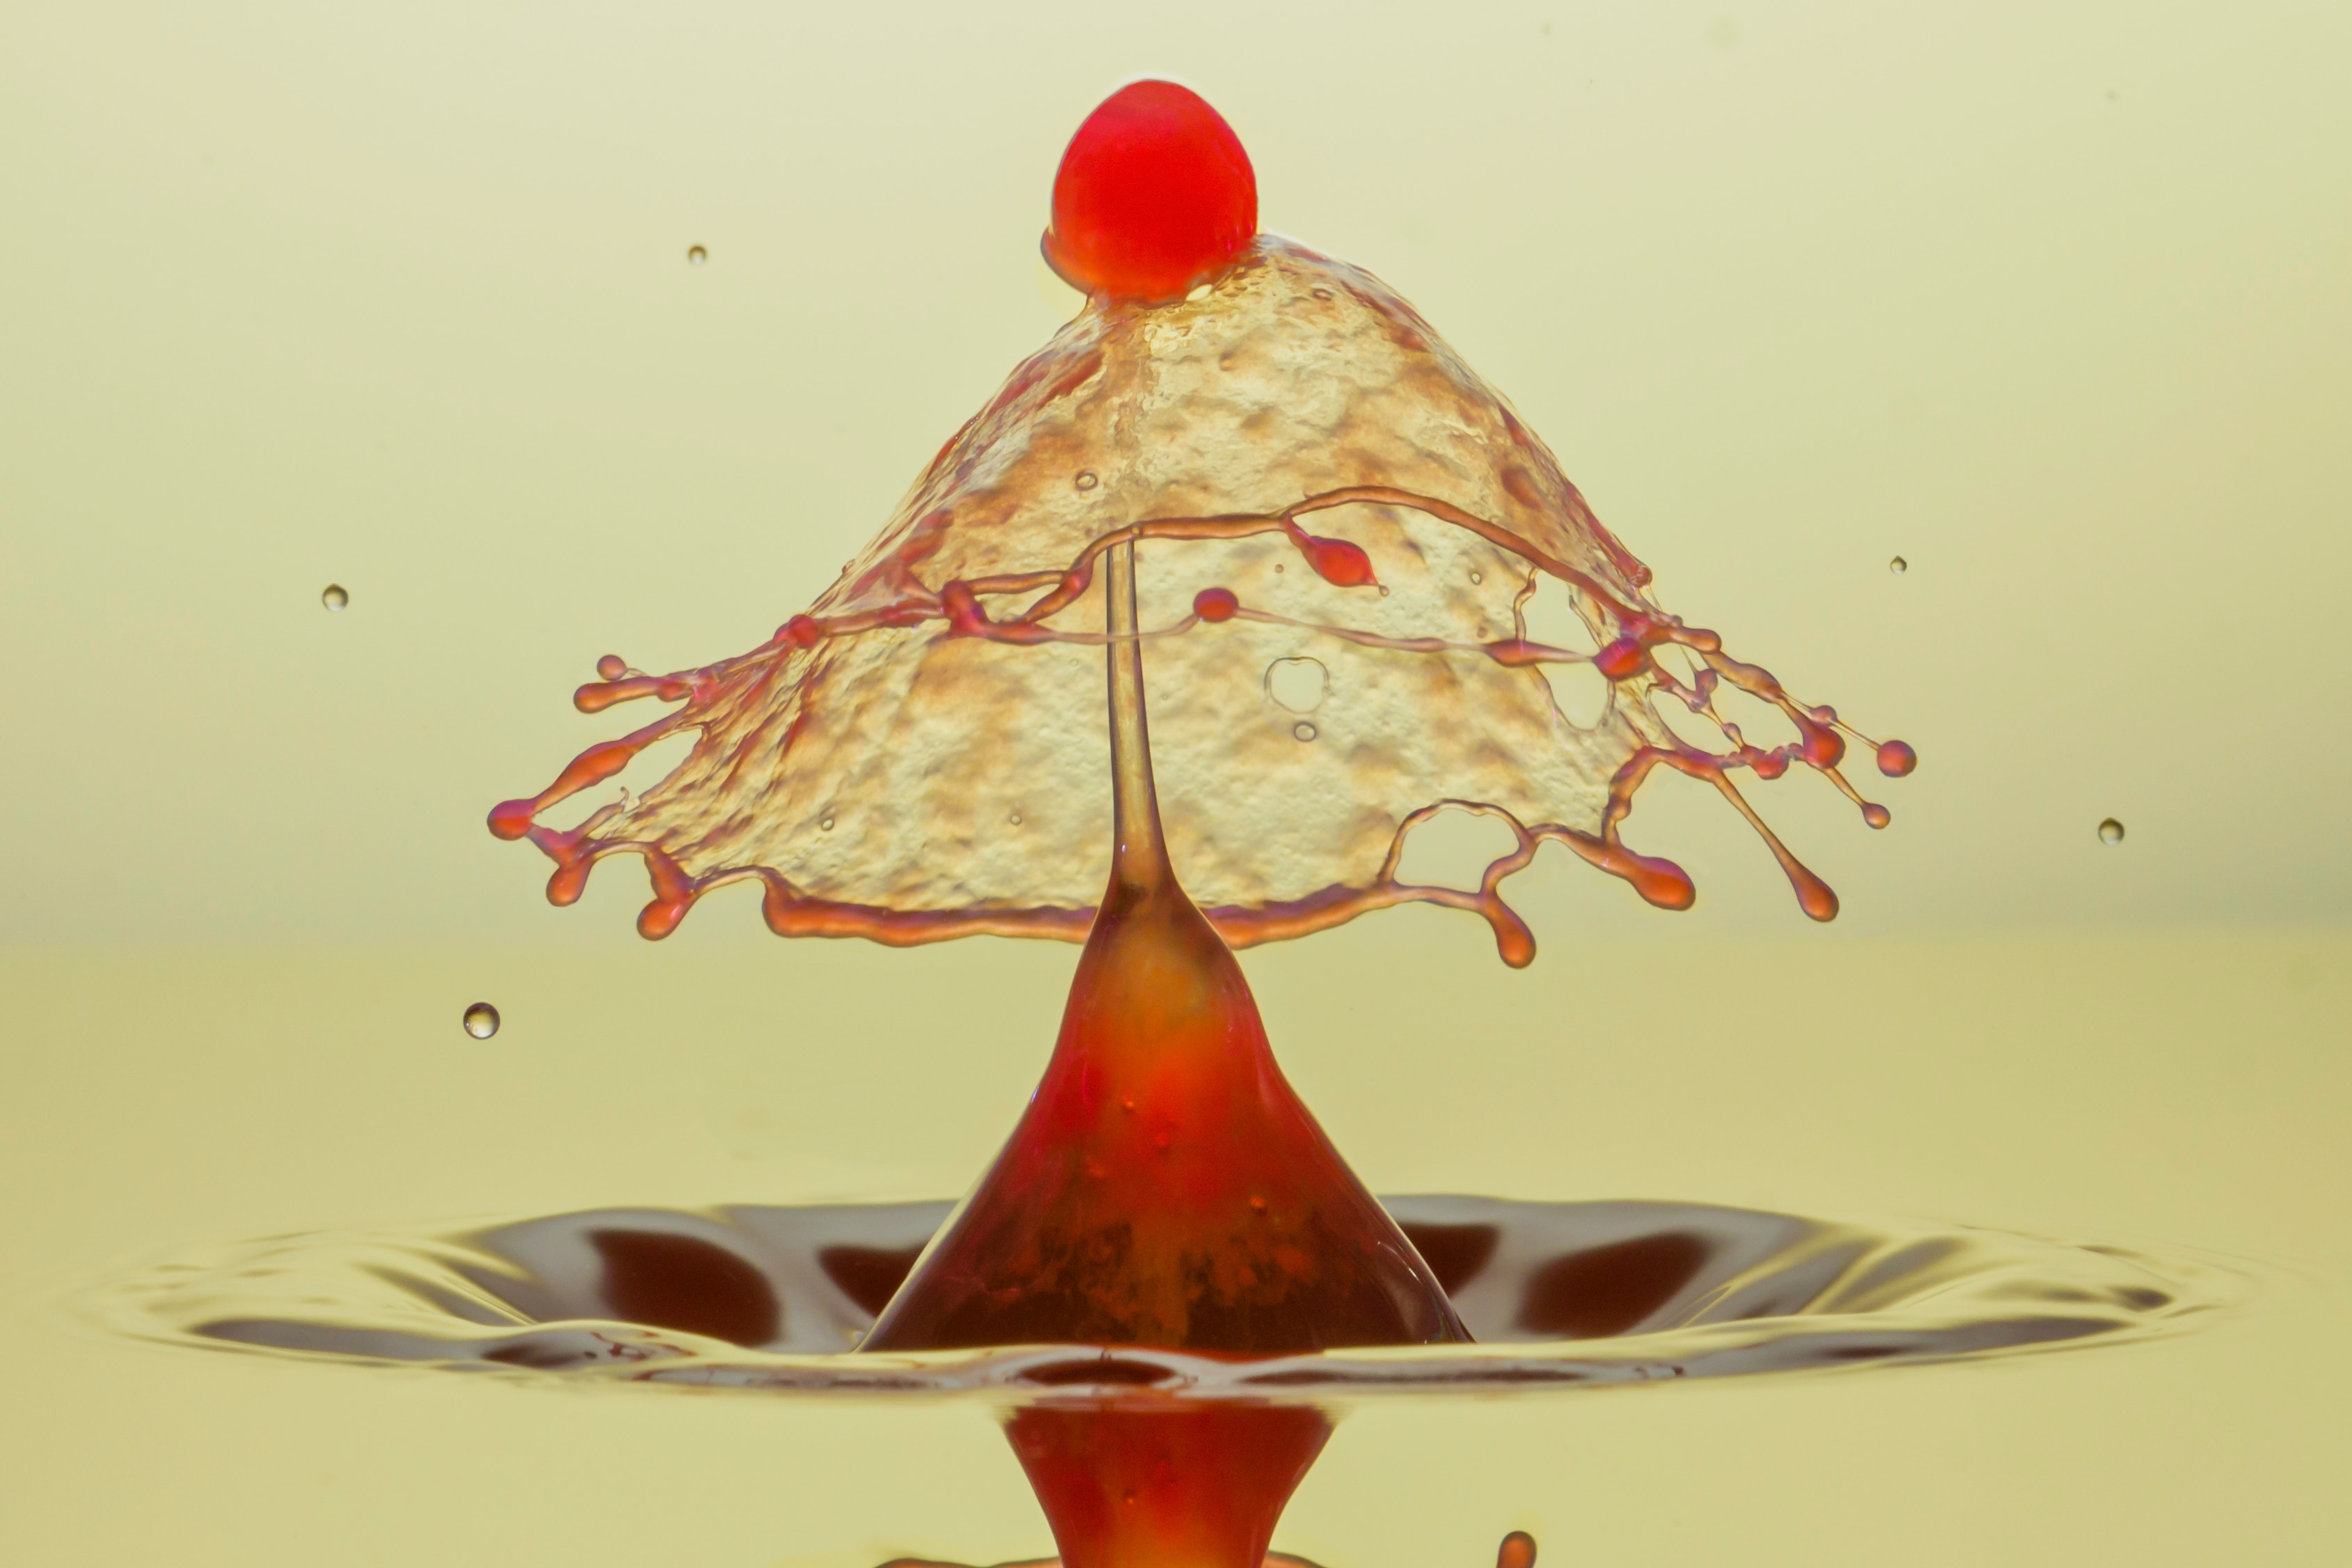 Photography of red liquid